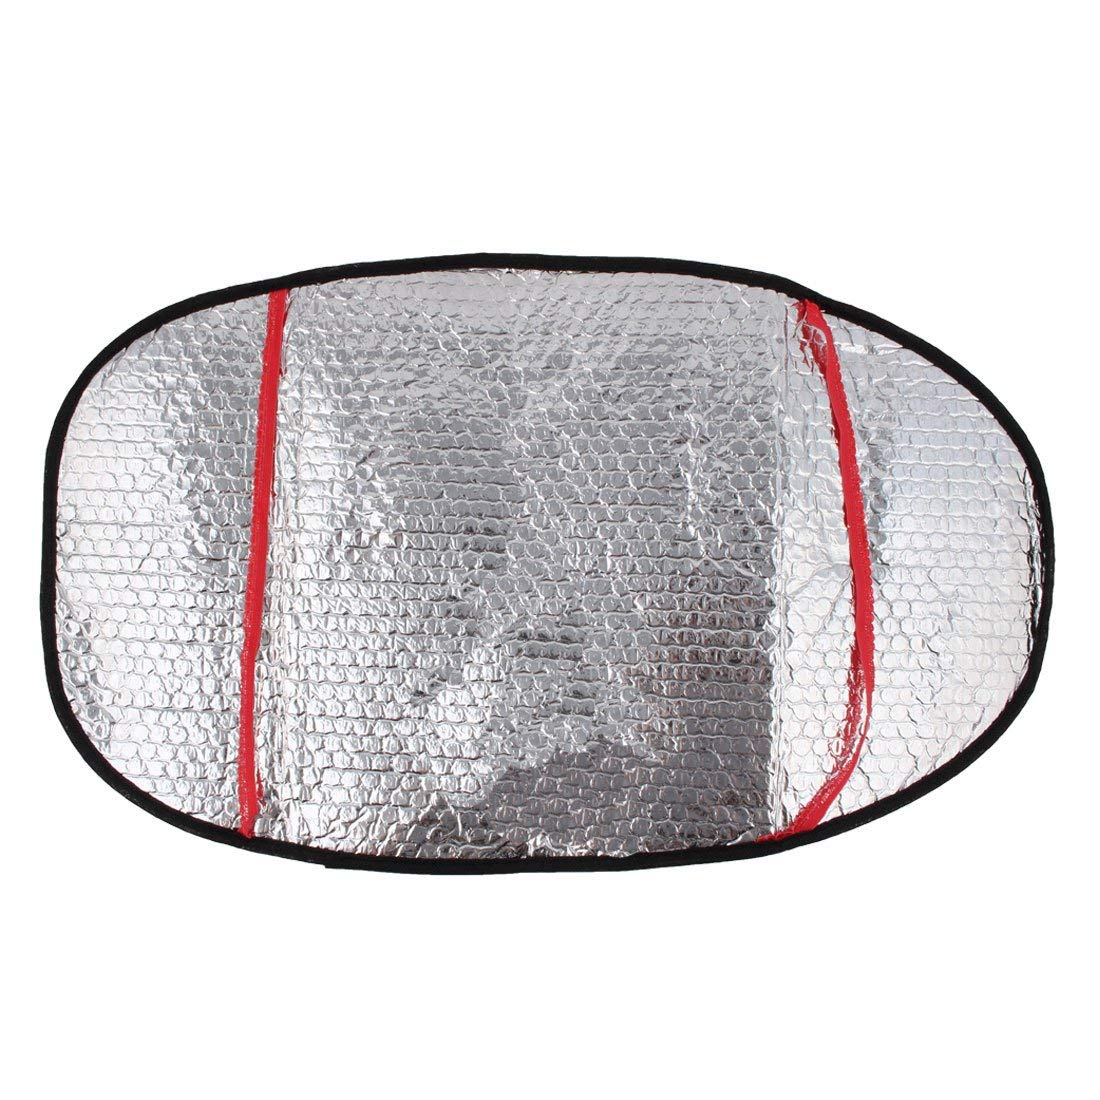 Sperrins Aluminum Foil Motorcycle Electric Car Water resistant Sunscreen Heat Insulation Mat Seat Cover Silver Color